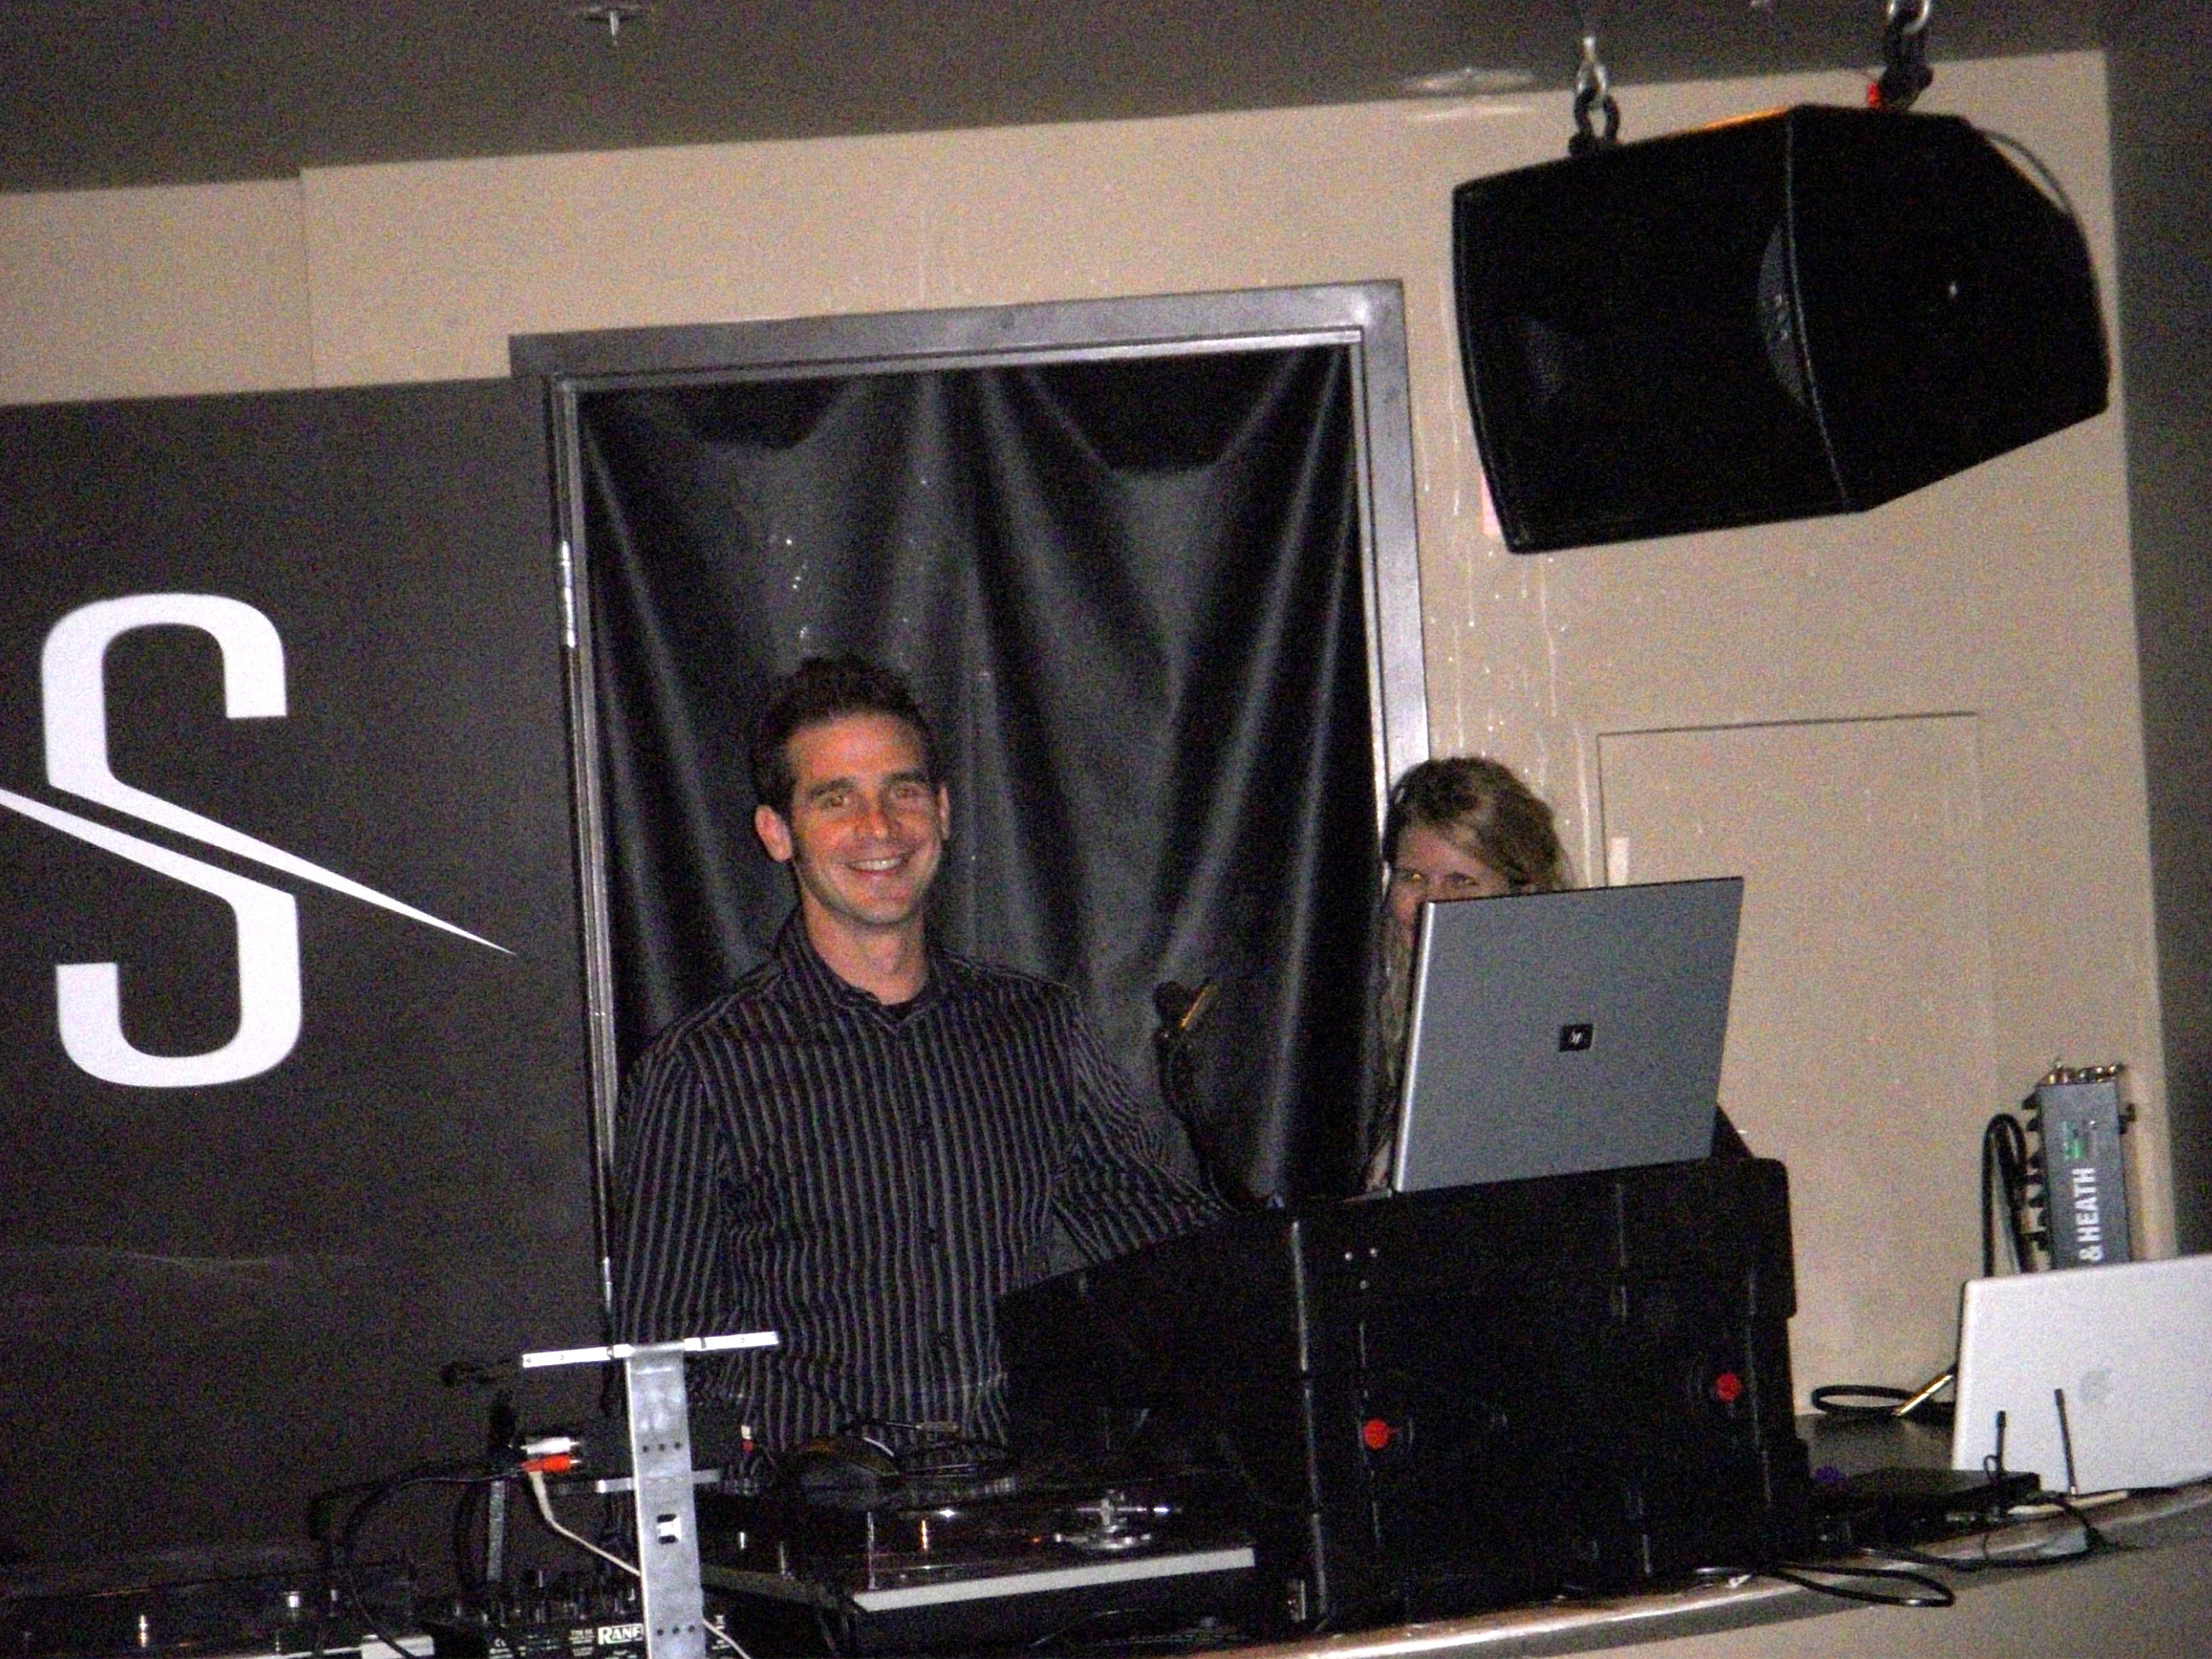 Master DJ, Tim Altbaum kept the house hoppin' way past closing time